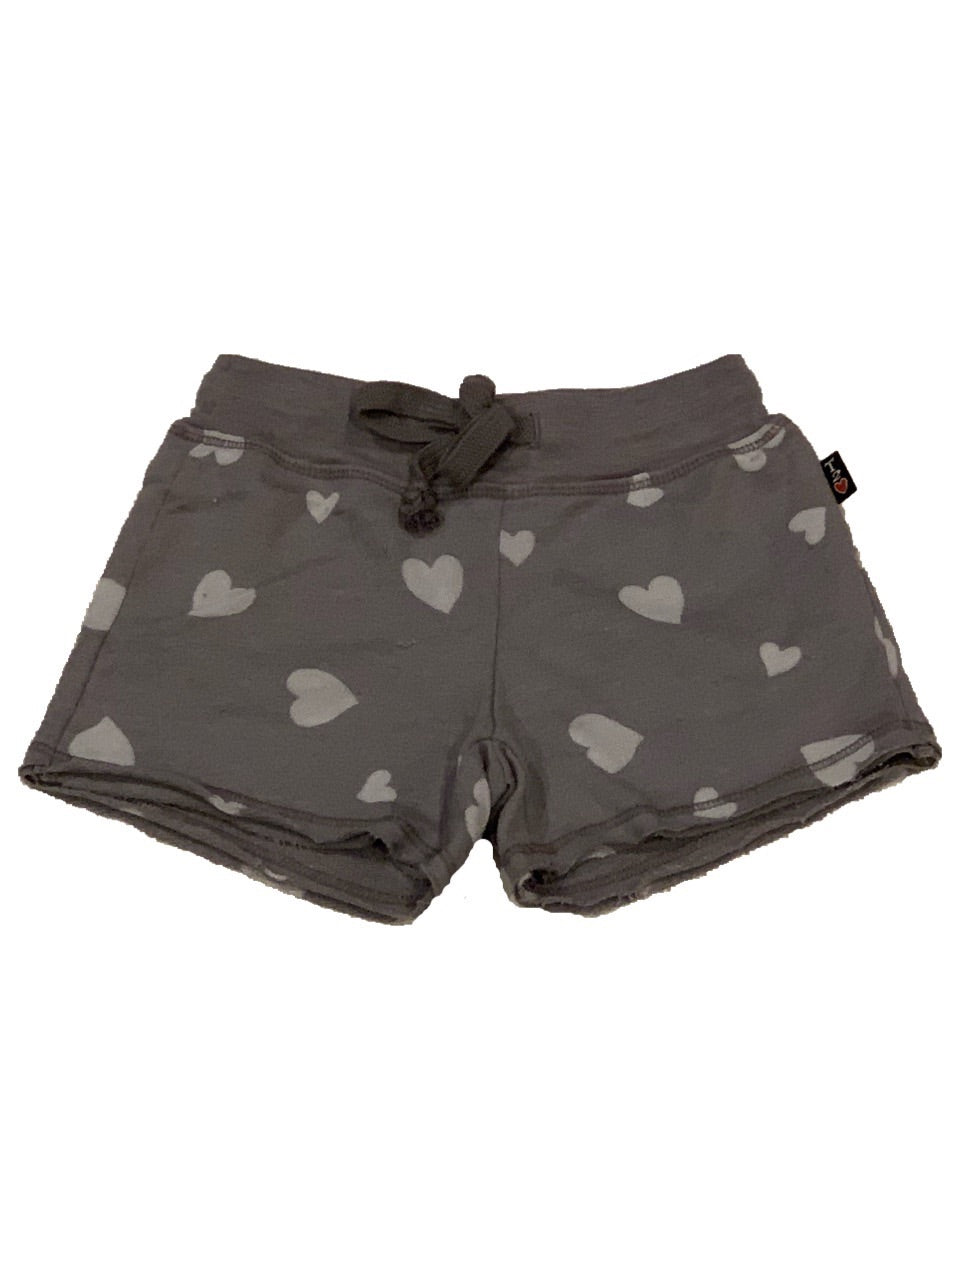 T2Love Raw Short Grey With White Hearts